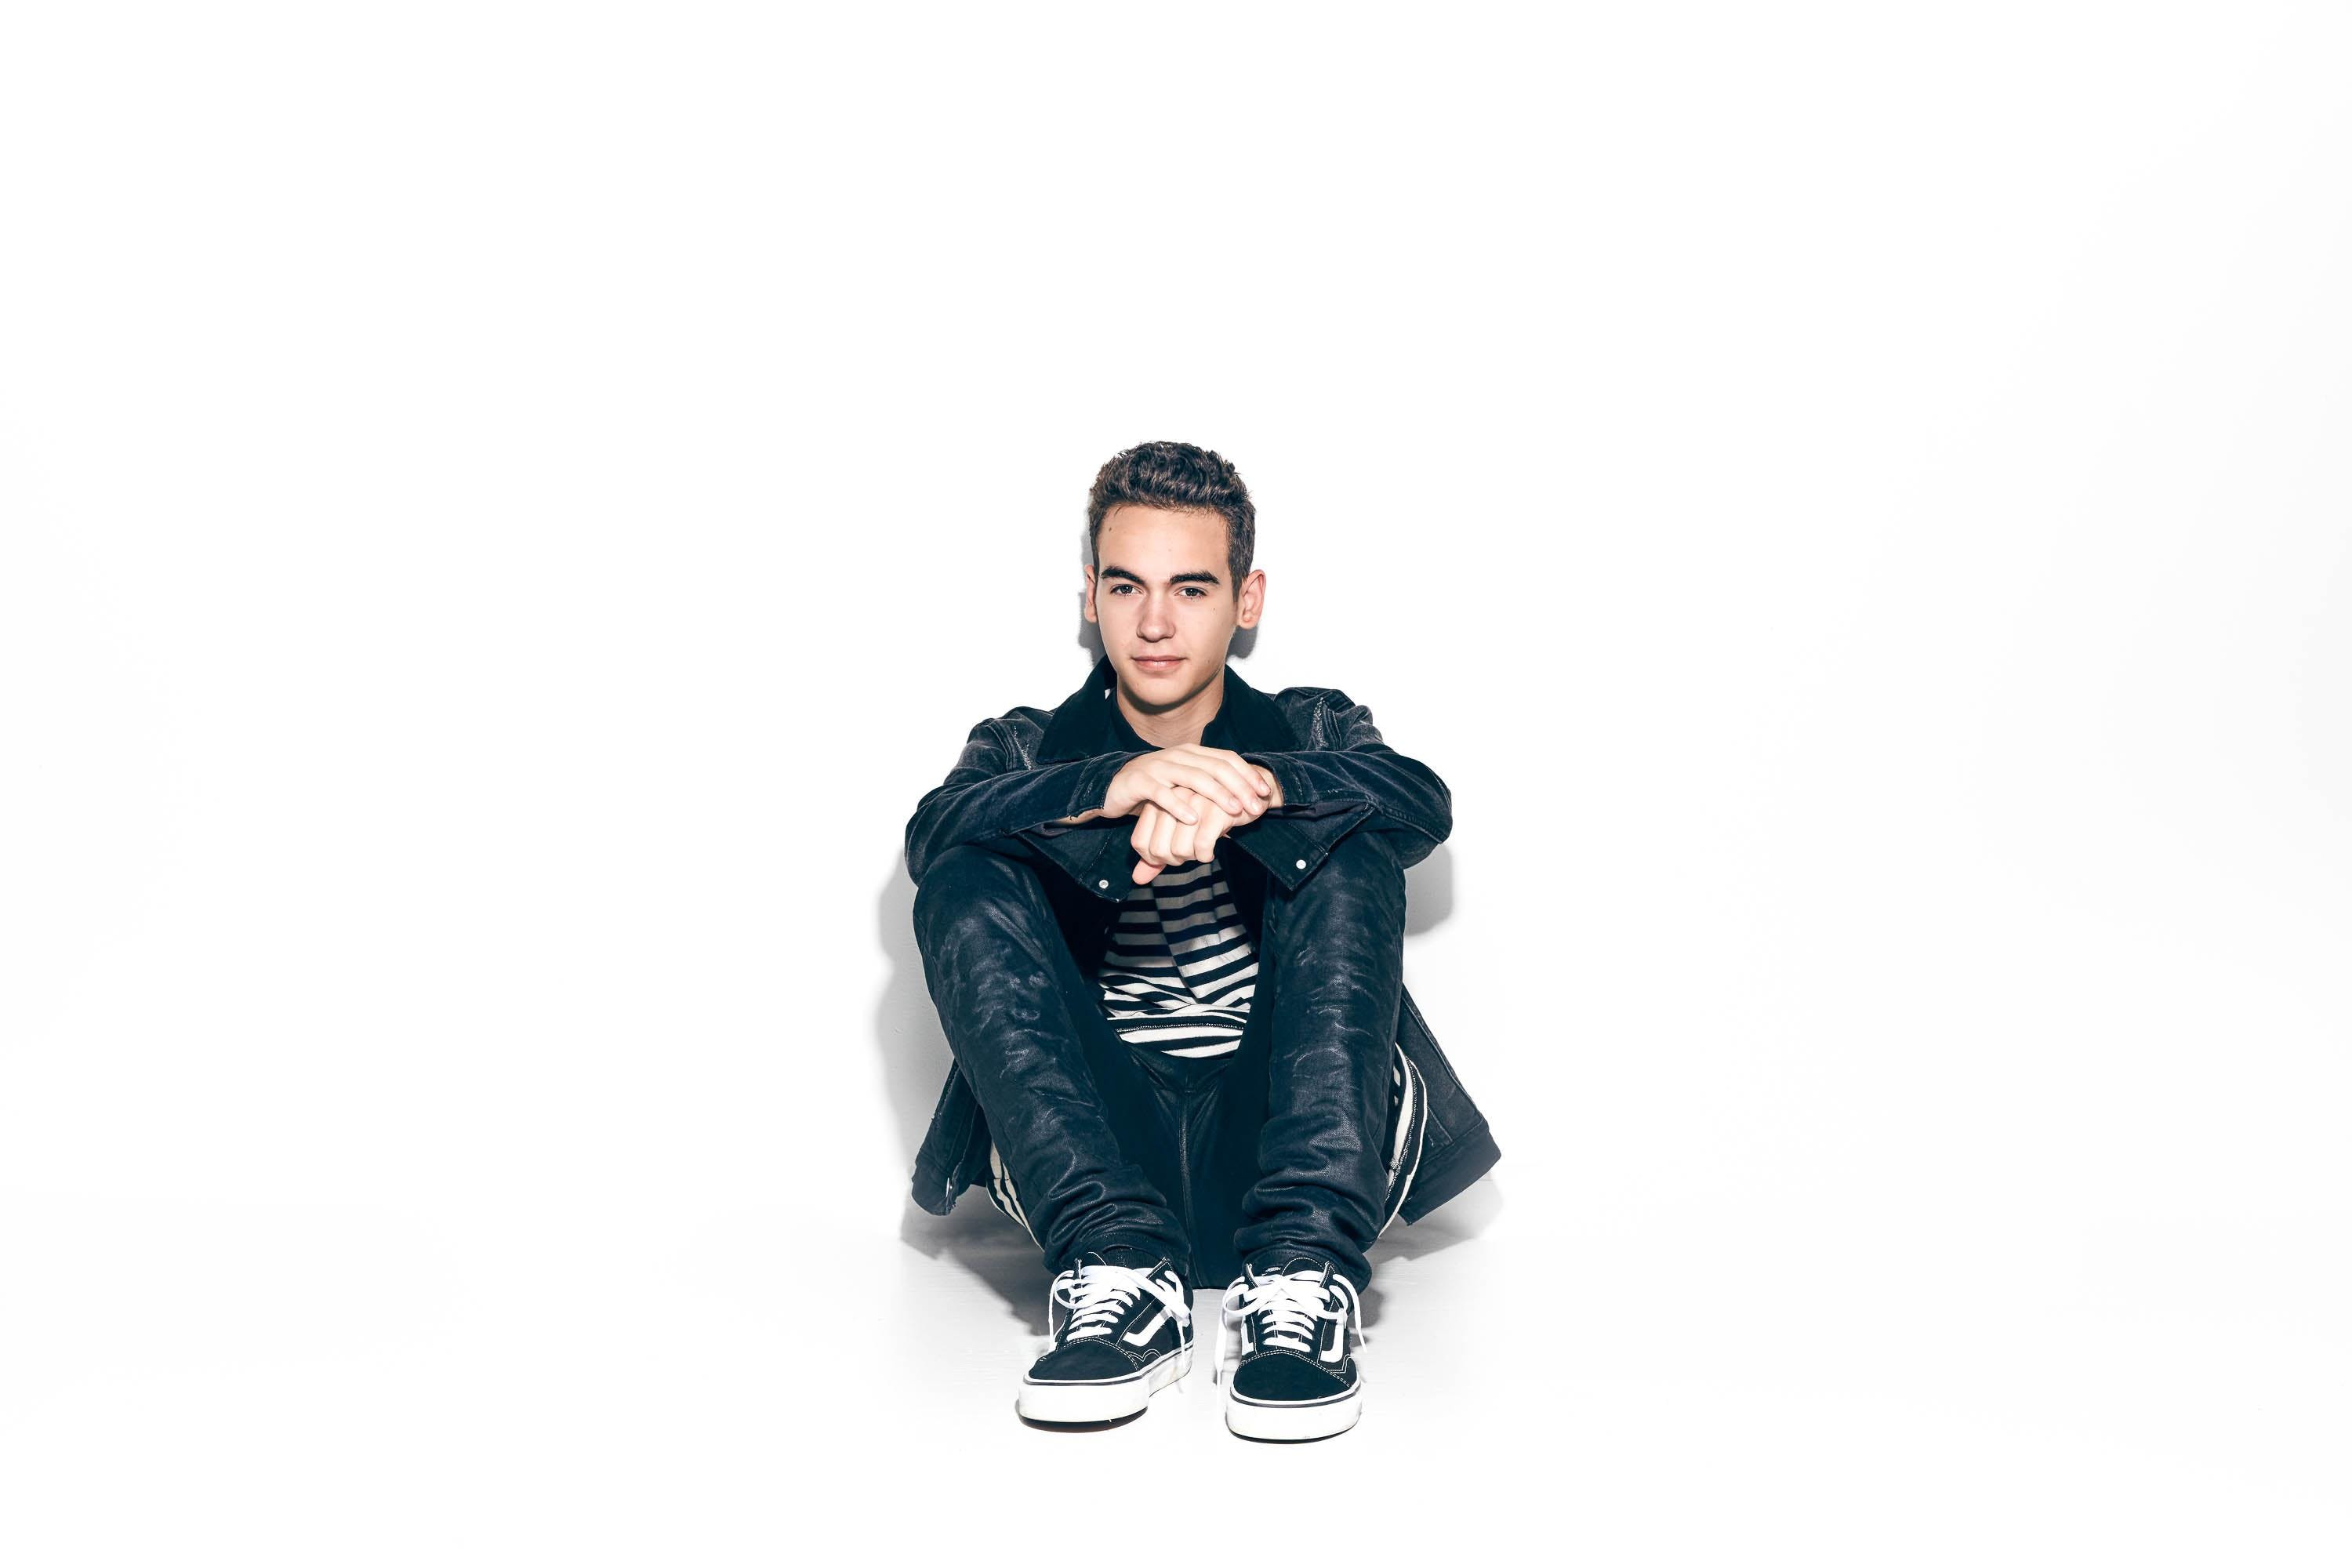 Alex Angelo Vip Meet And Greet Upgrade Dayton Ohio Huber Heights